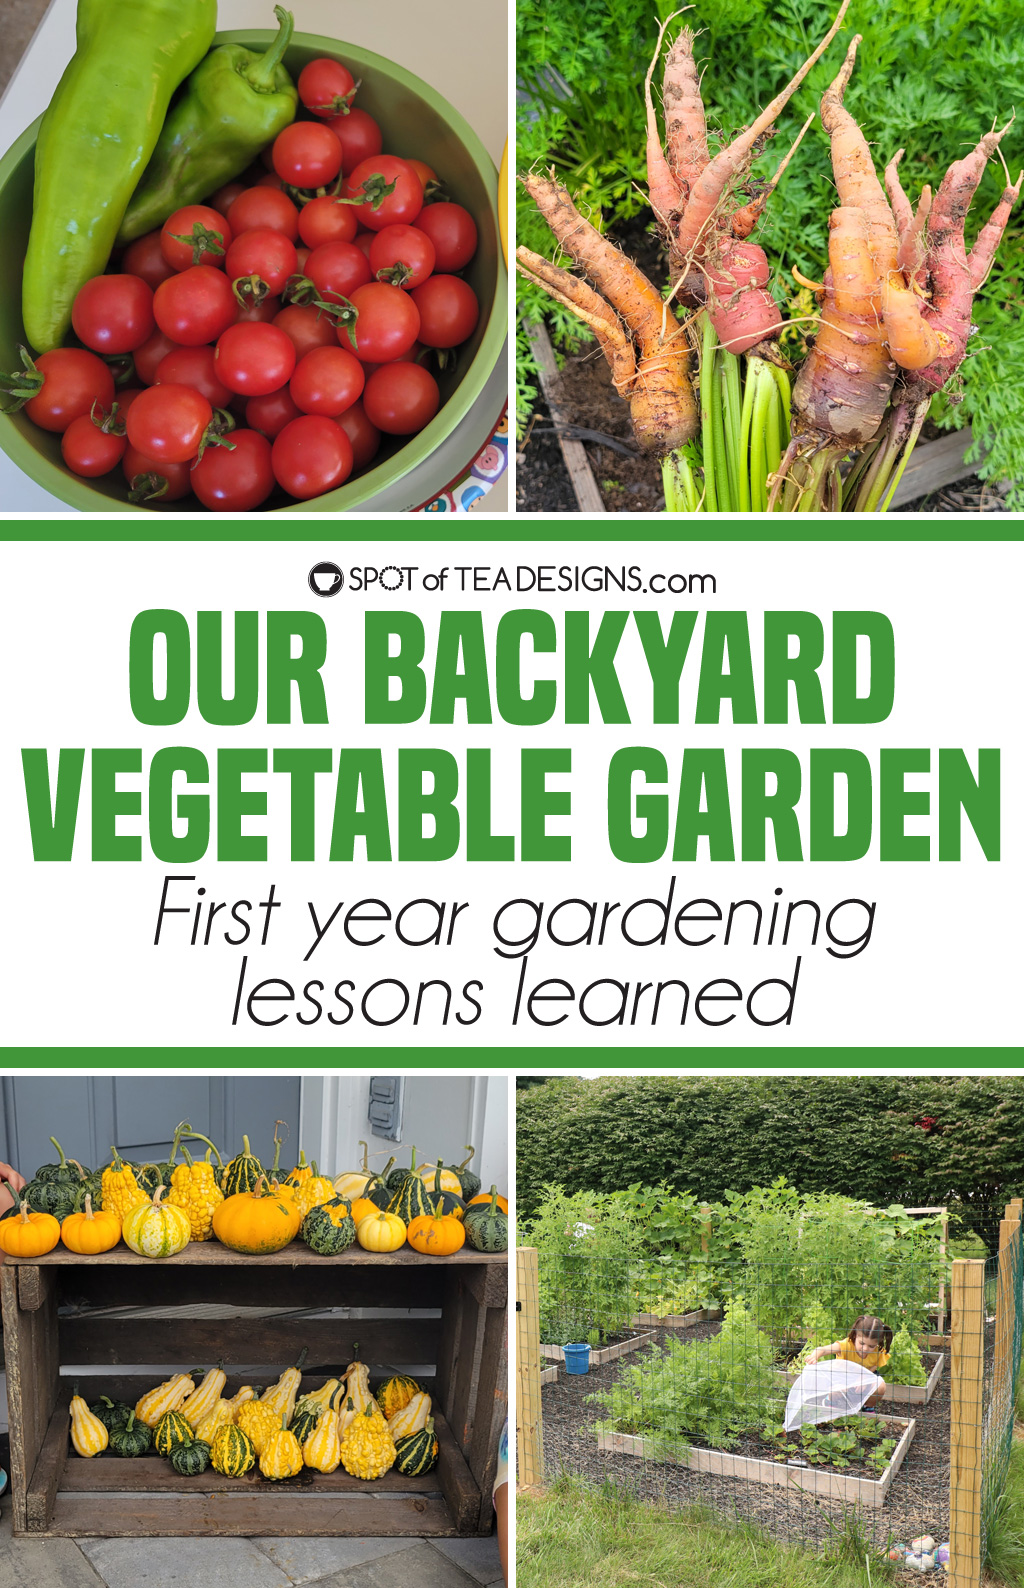 Backyard vegetable garden - first year lessons learned | spotofteadesigns.com